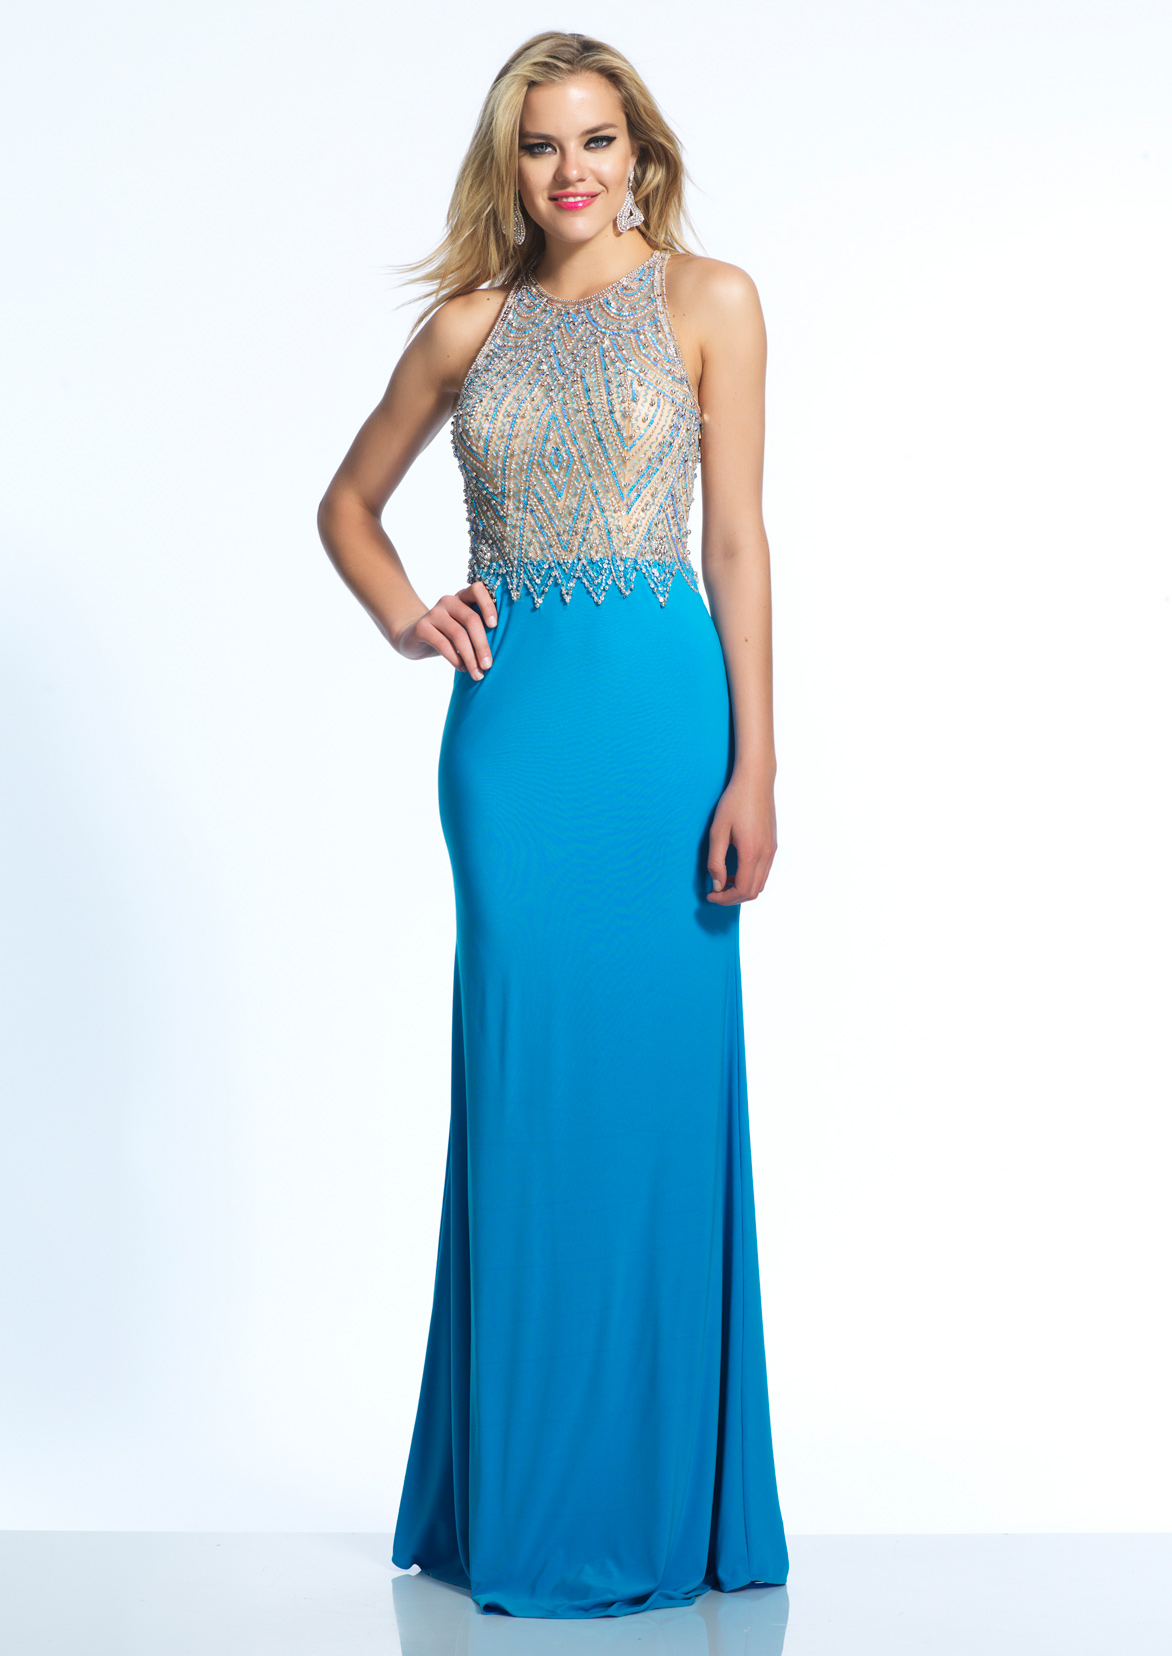 Promdress 2019 other colors ZRGWYJG